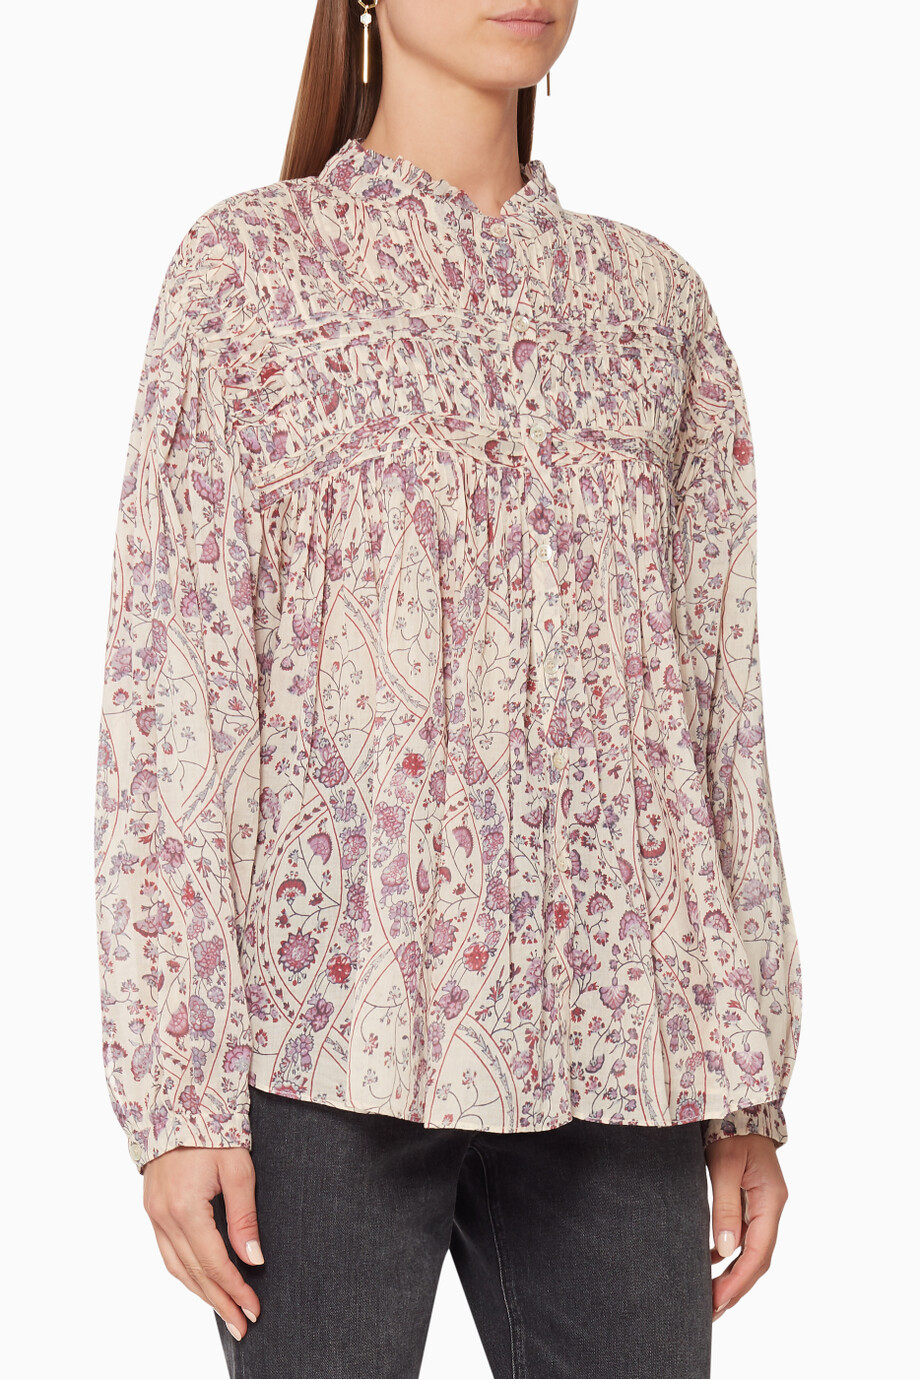 Shop Isabel Marant Etoile Neutral Lalia Smocked Top For